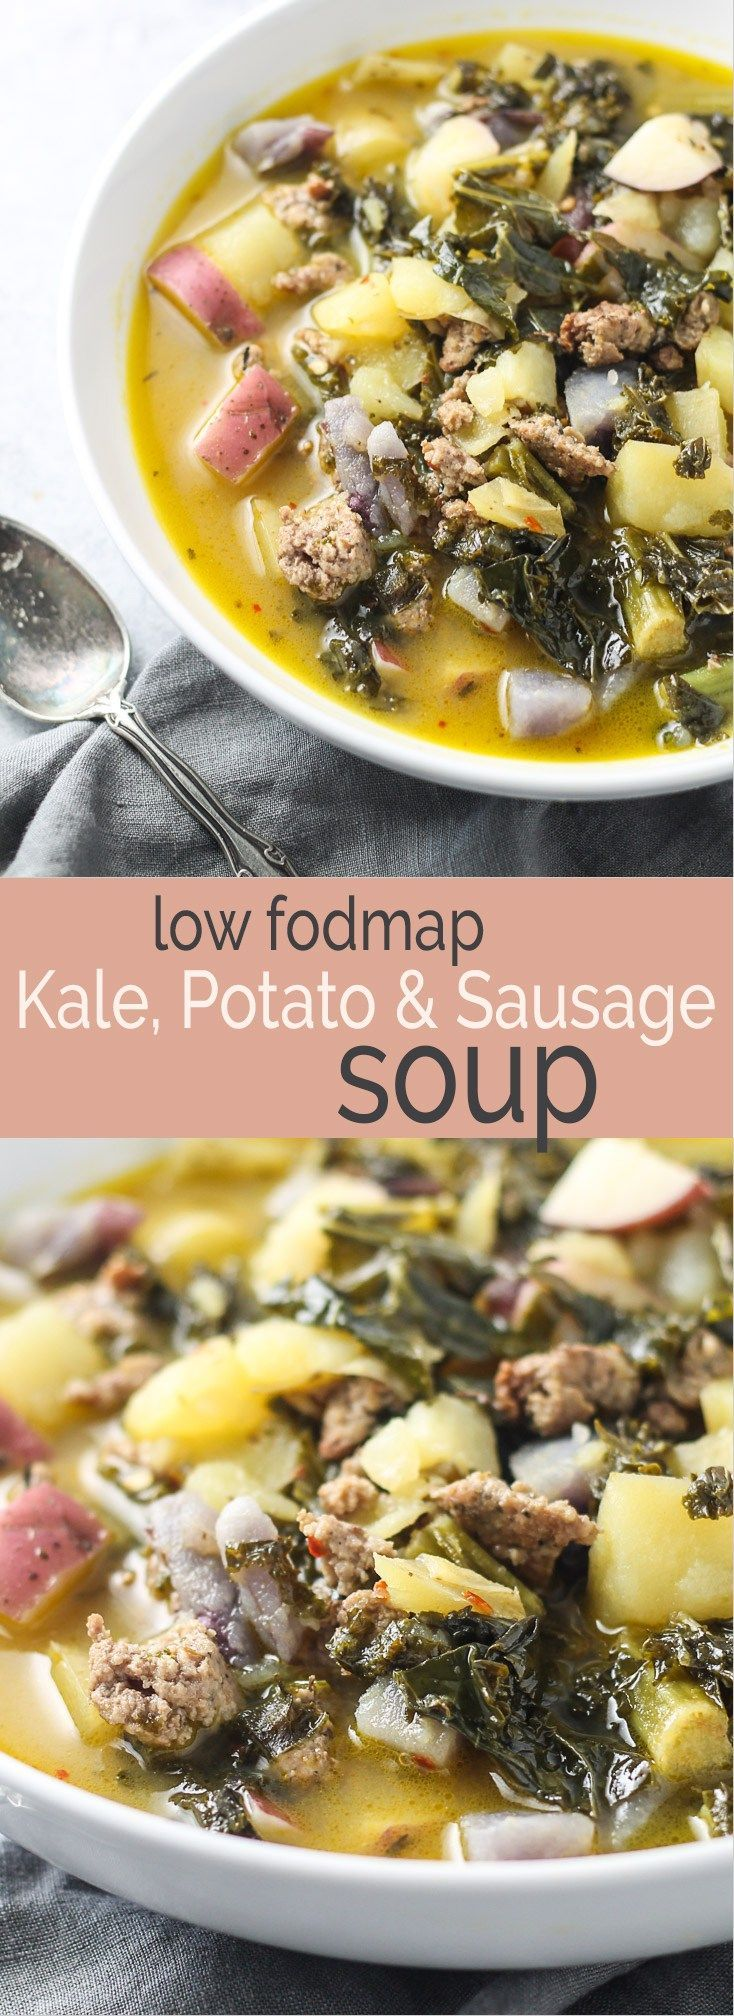 This Low Fodmap Kale, Potato & Sausage Soup recipe is sure to warm you up this winter! it's gluten free, dairy free and oh-so-comforting!